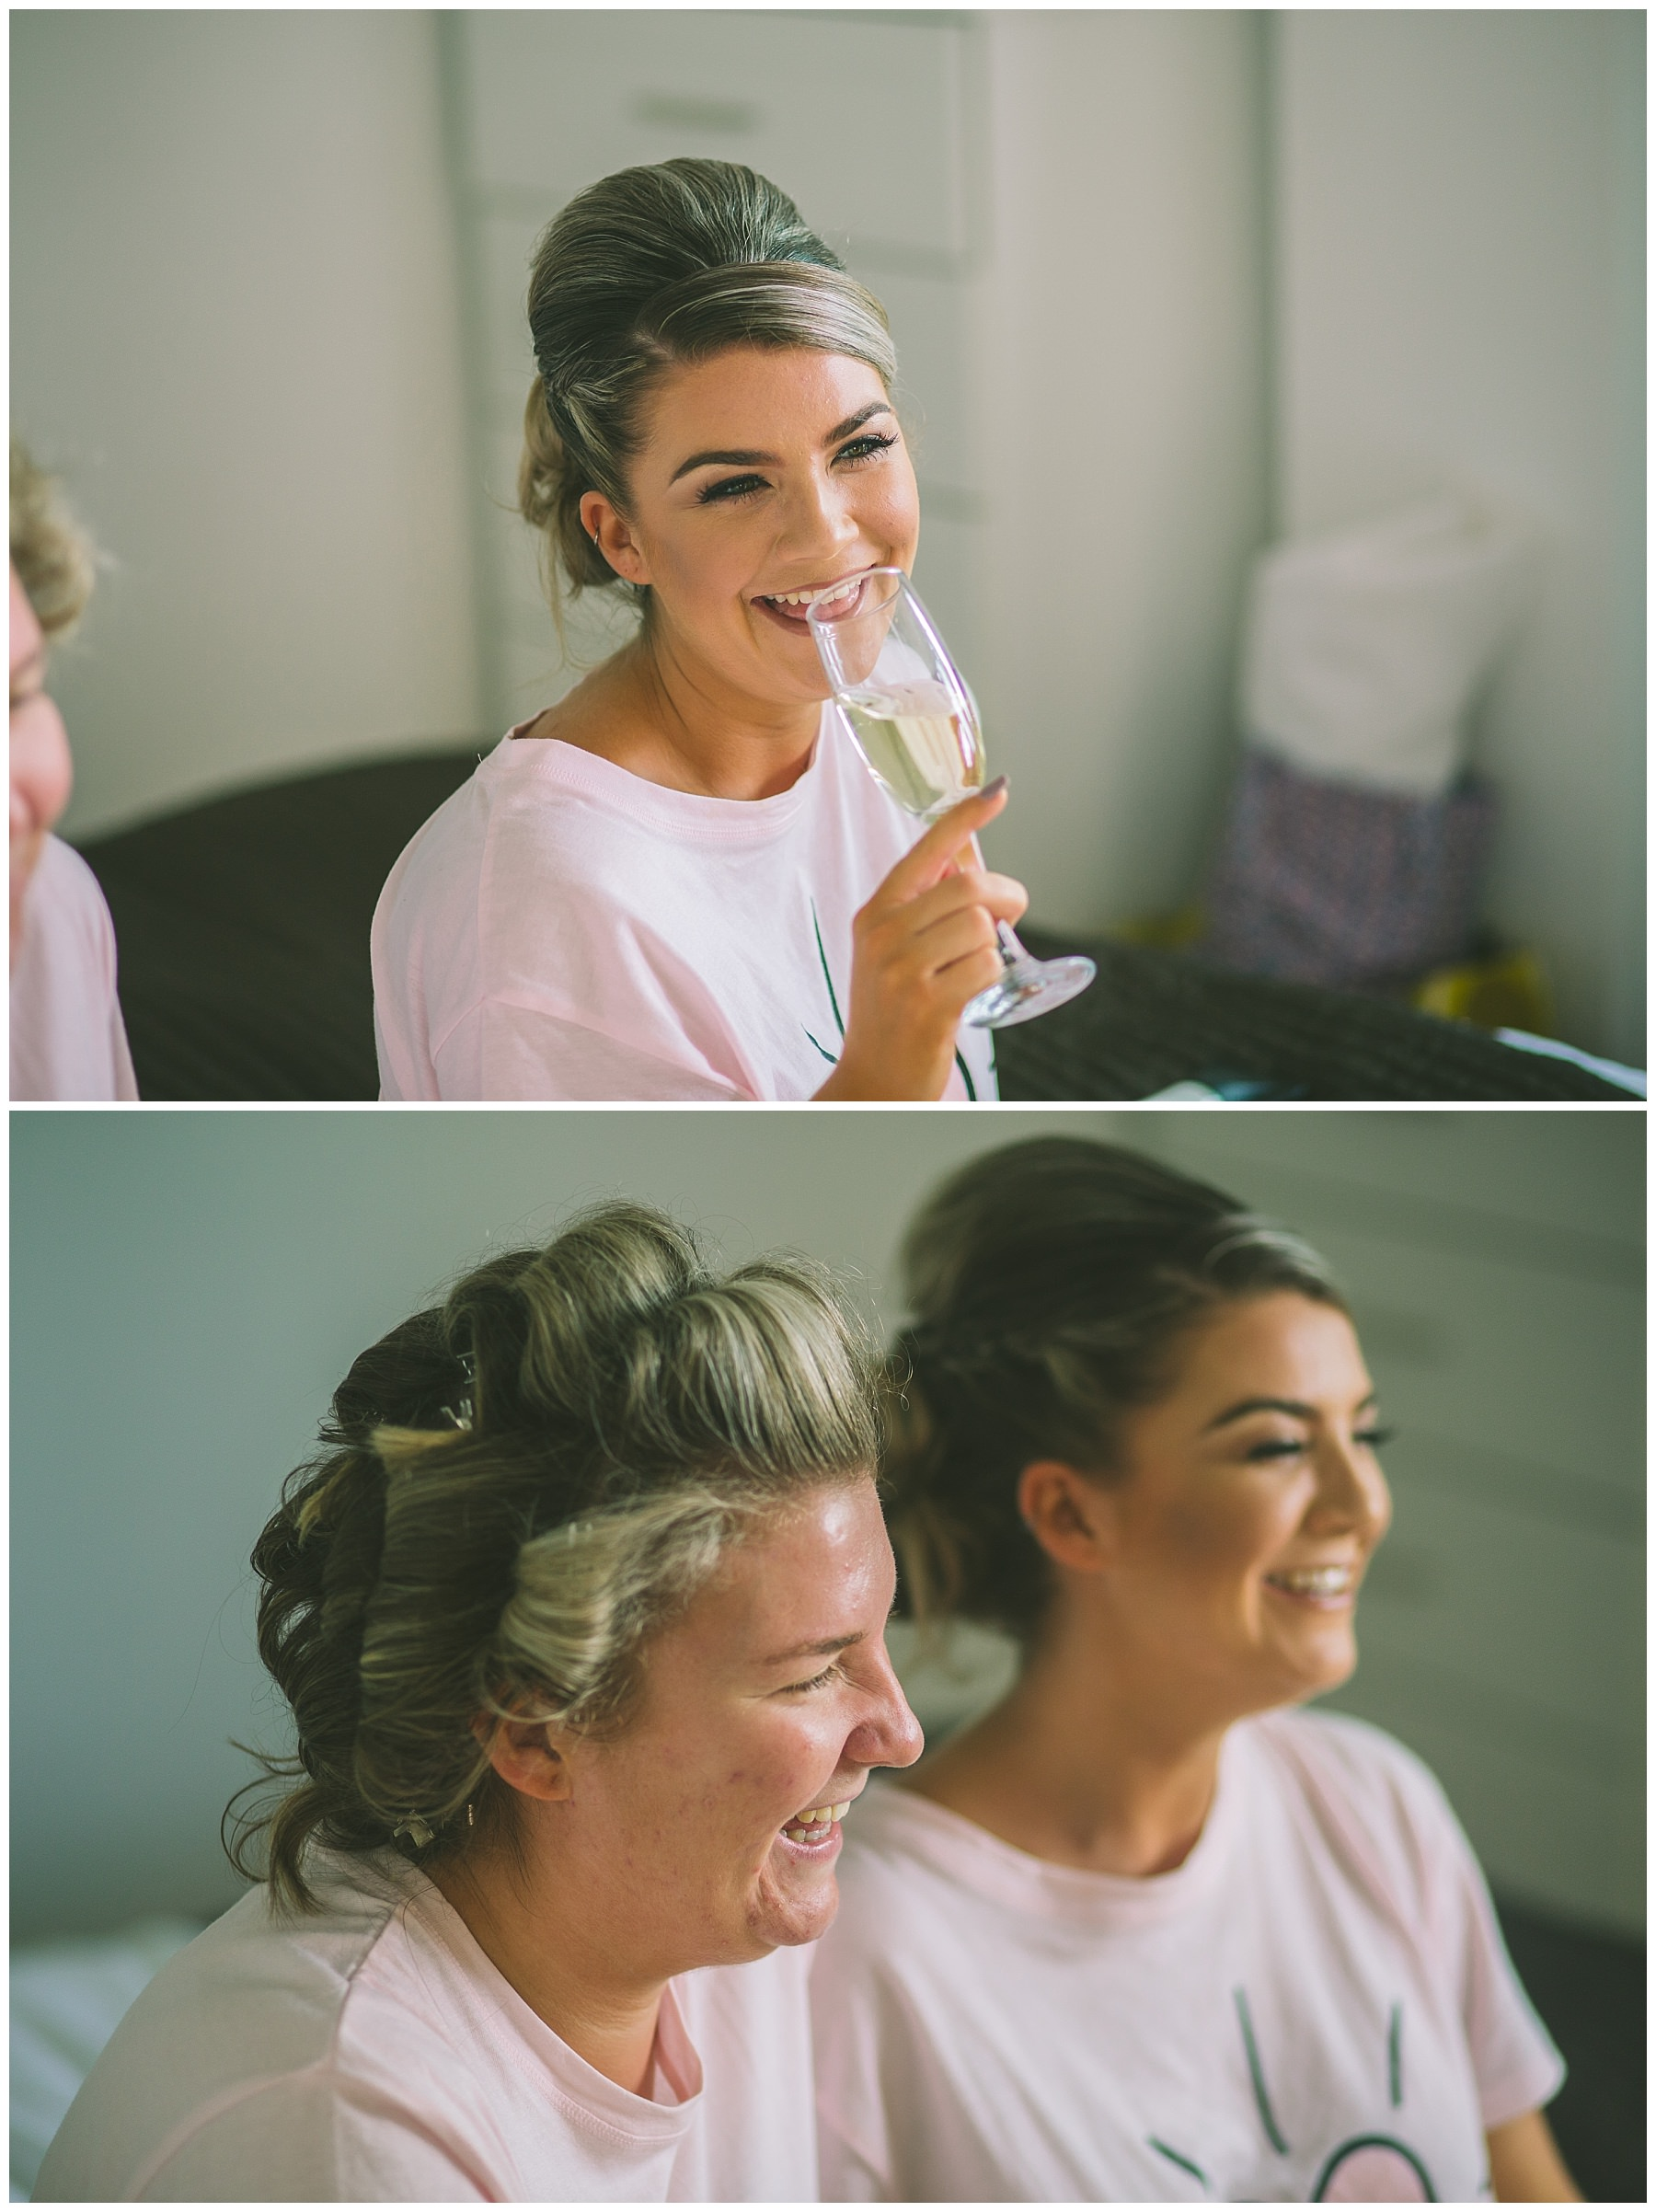 Bride and her sister enjoying the bridal morning